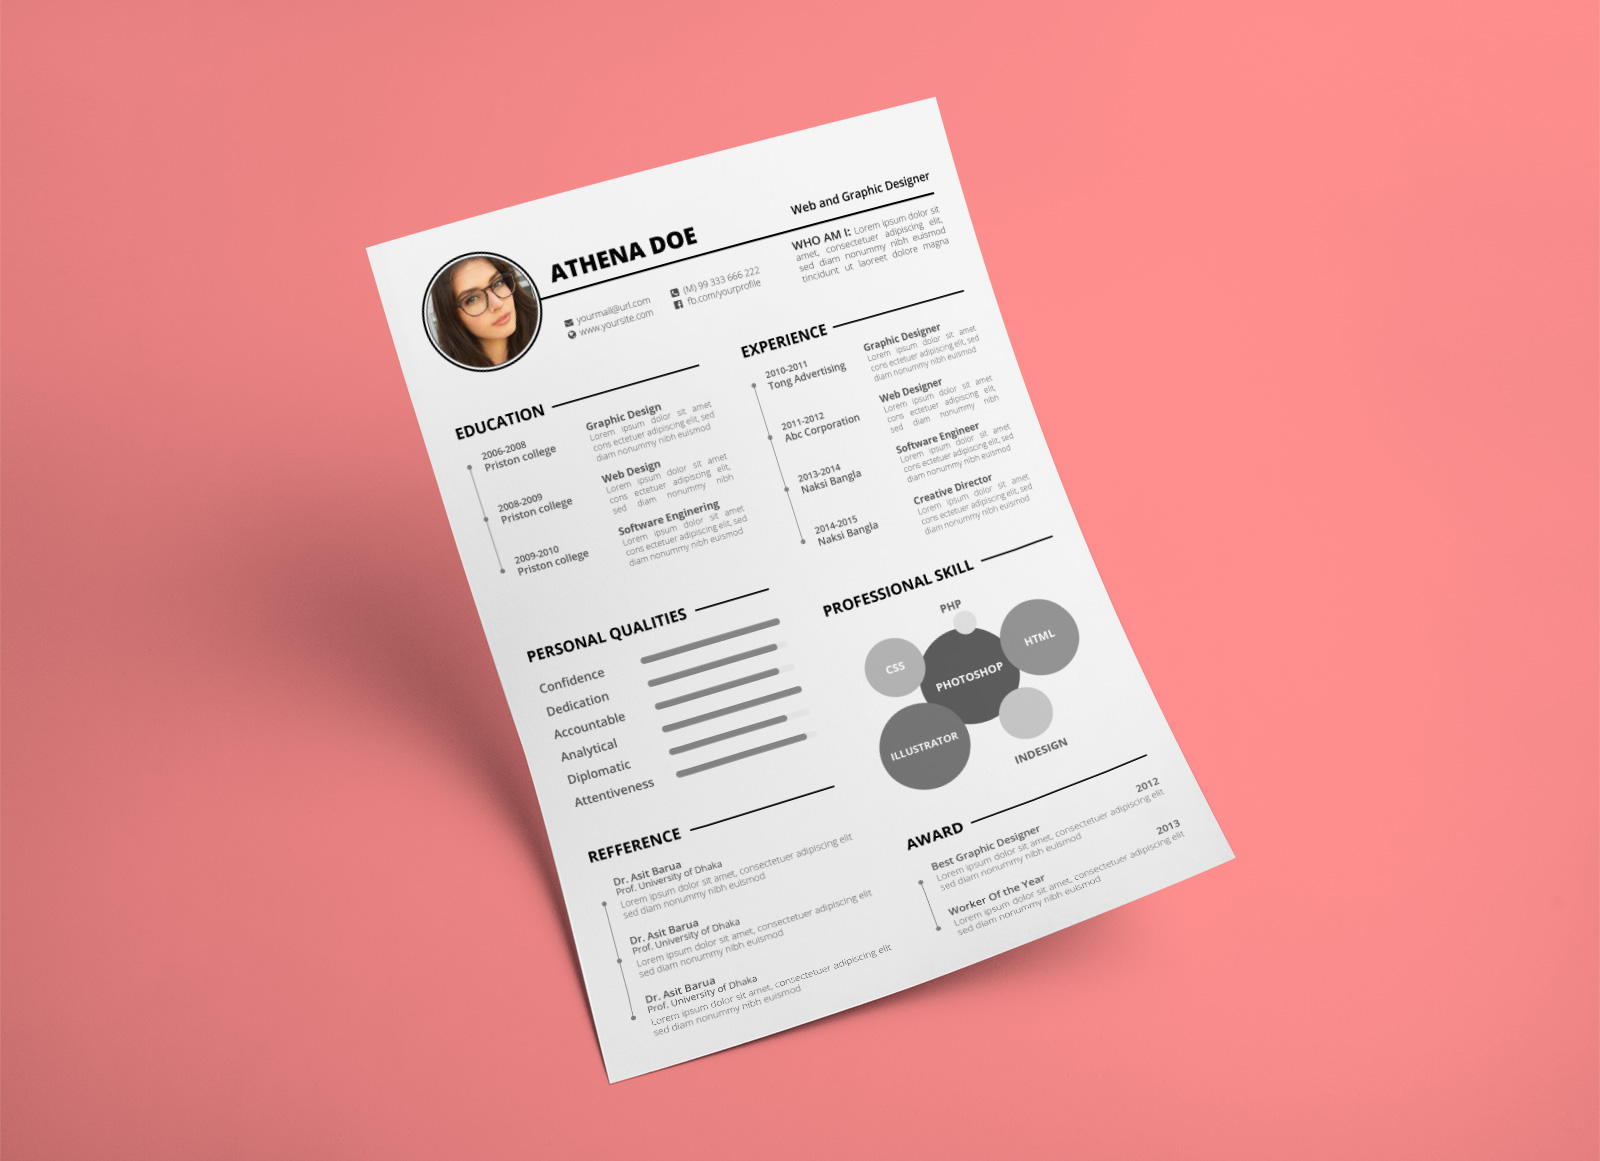 Free-Elegant-CV-Template-in-Word-PSD-&-Ai-Format-1 (1)